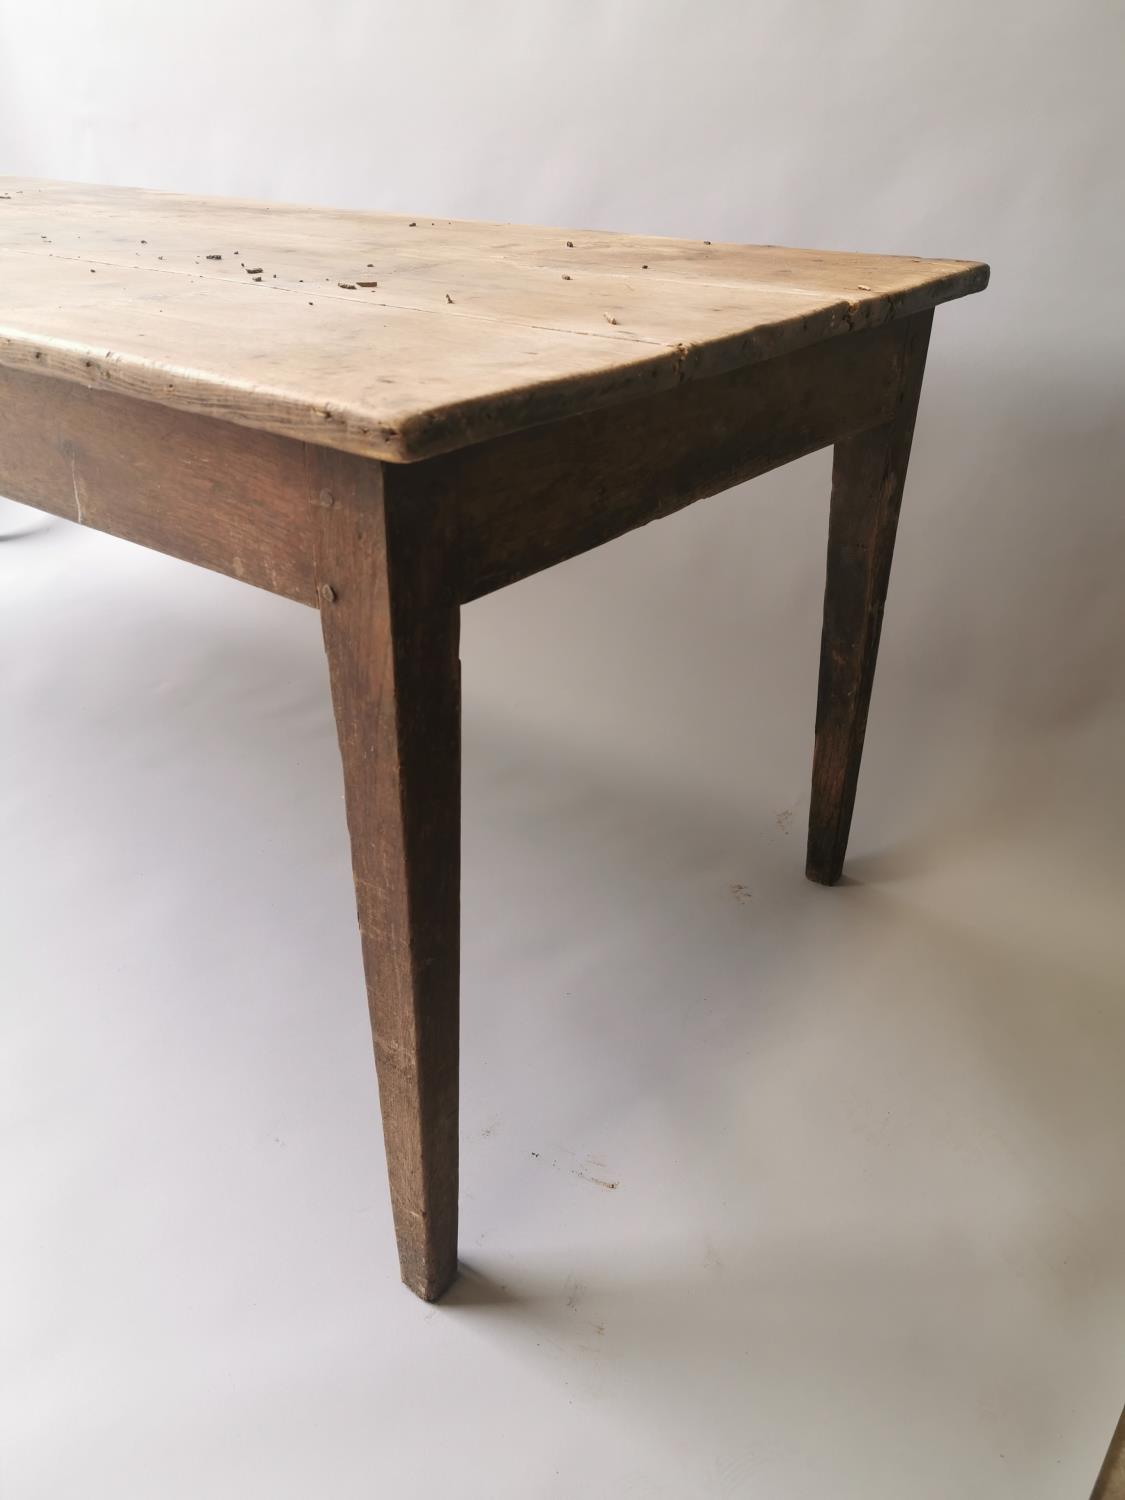 19th C. pine and oak kitchen table on square tapered legs 70 cm H x 198 cm L x 79 cm D - Image 4 of 5